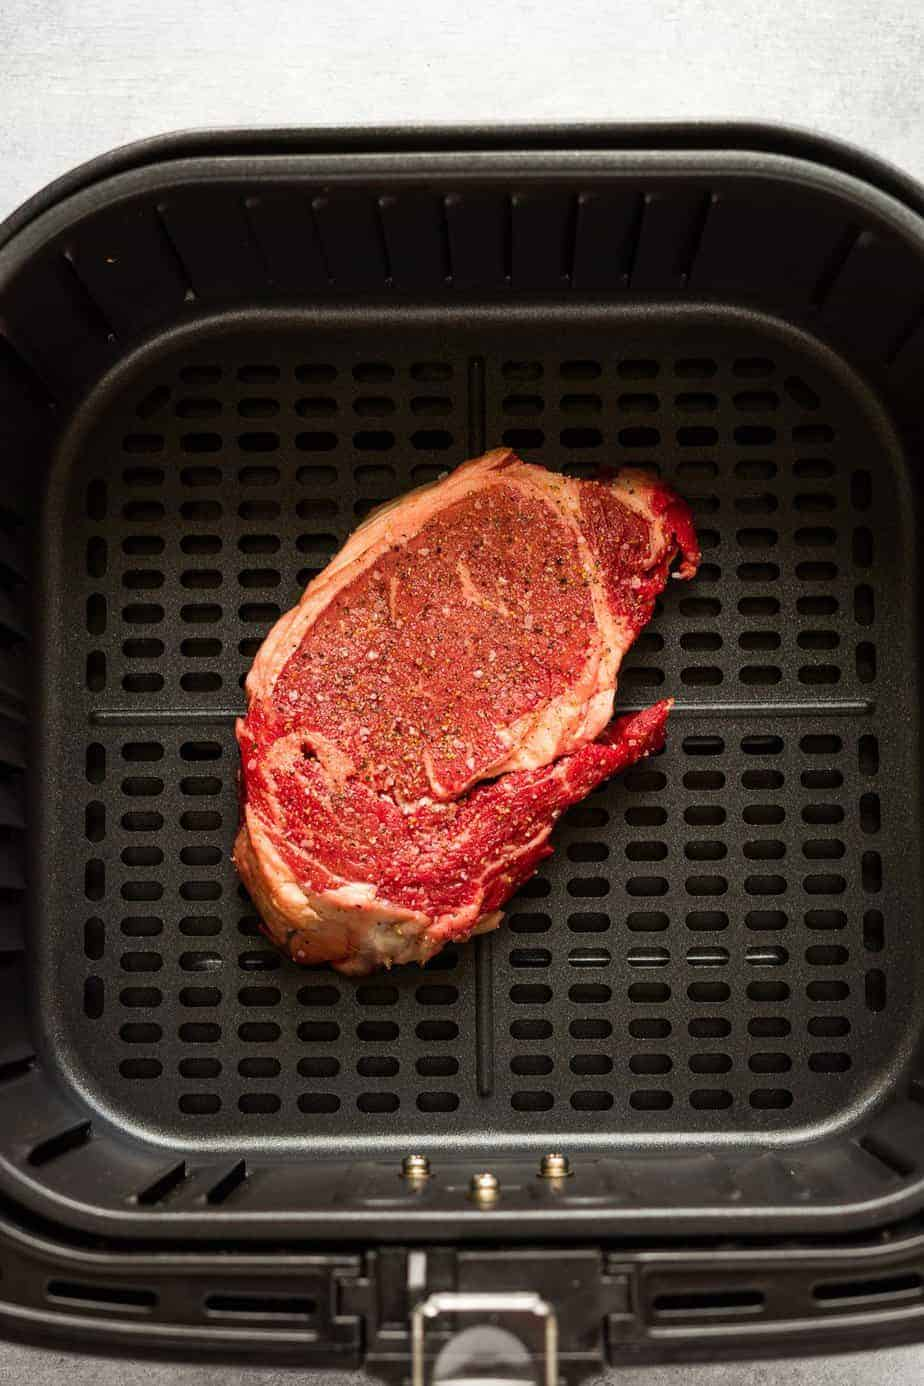 seasoned ribeye steak inside the air fryer basket